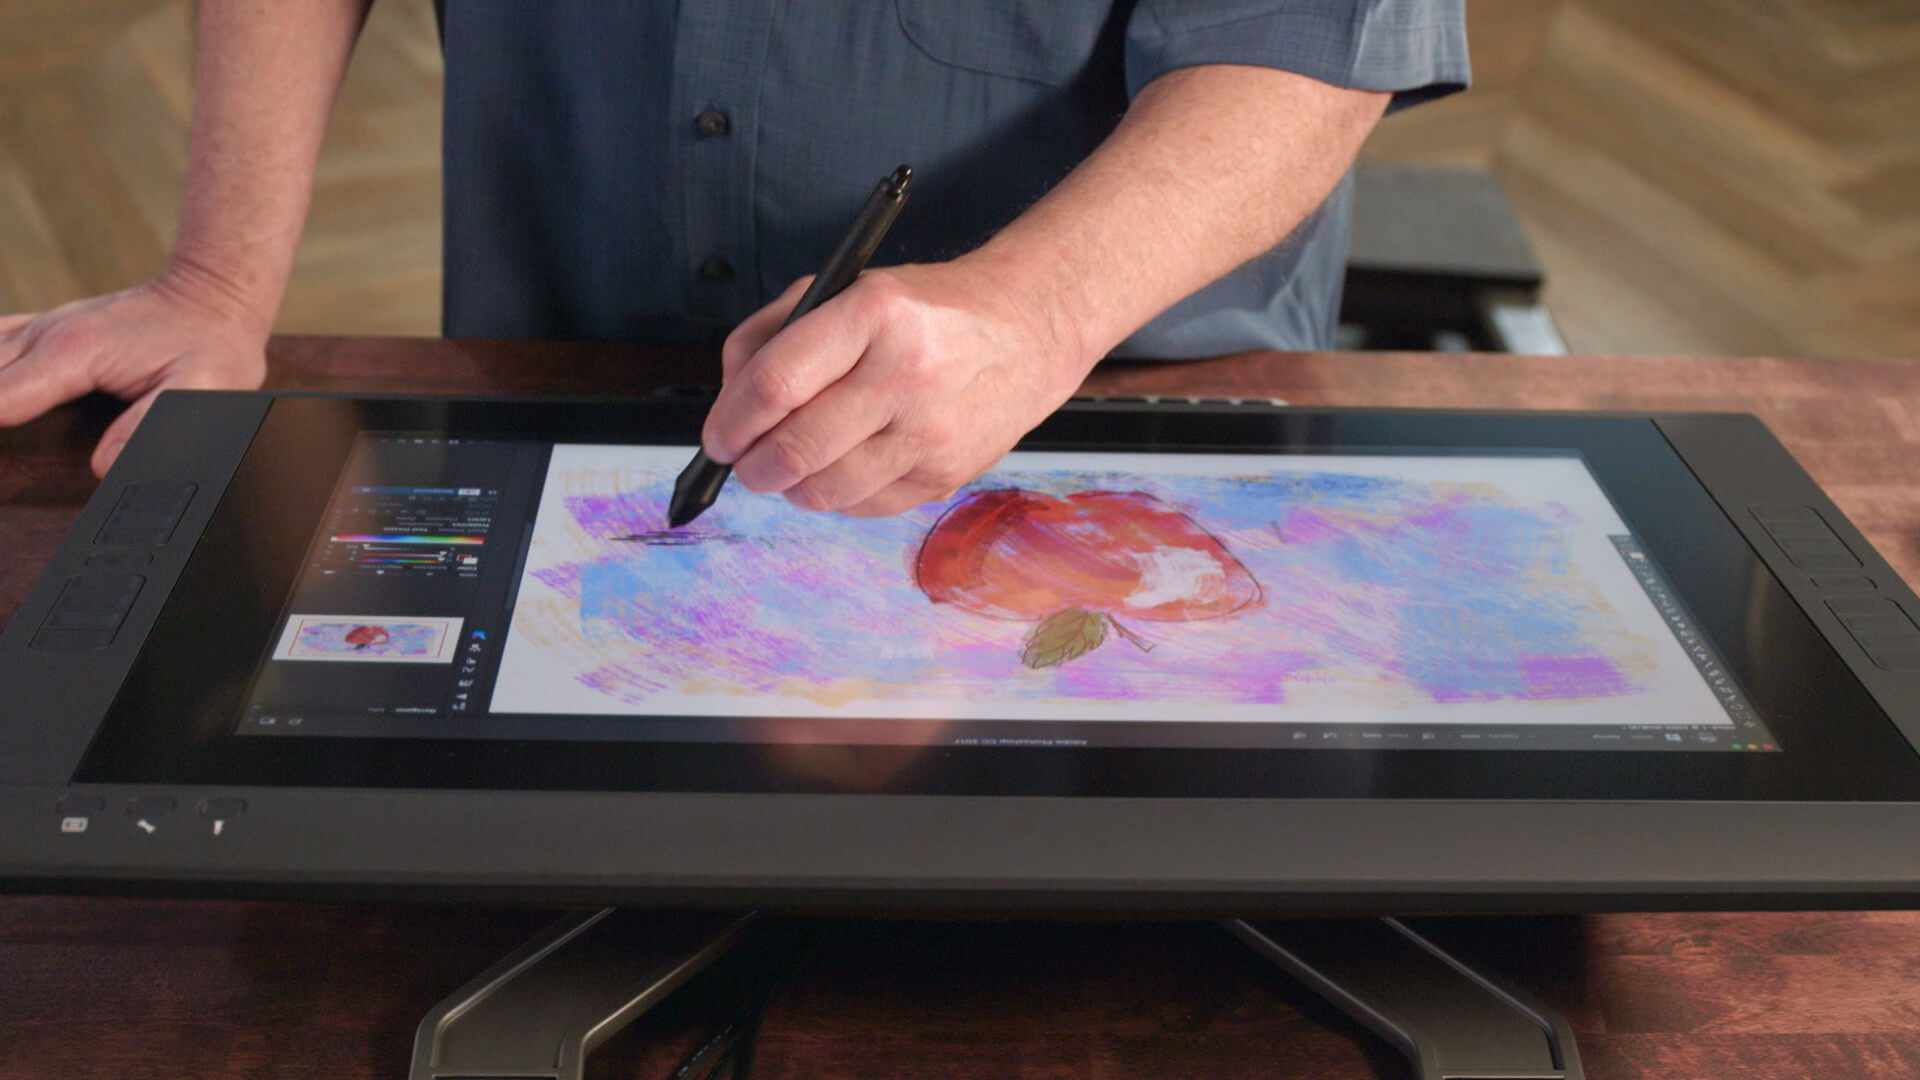 Cintique Tablets, Drawing Tablets and More